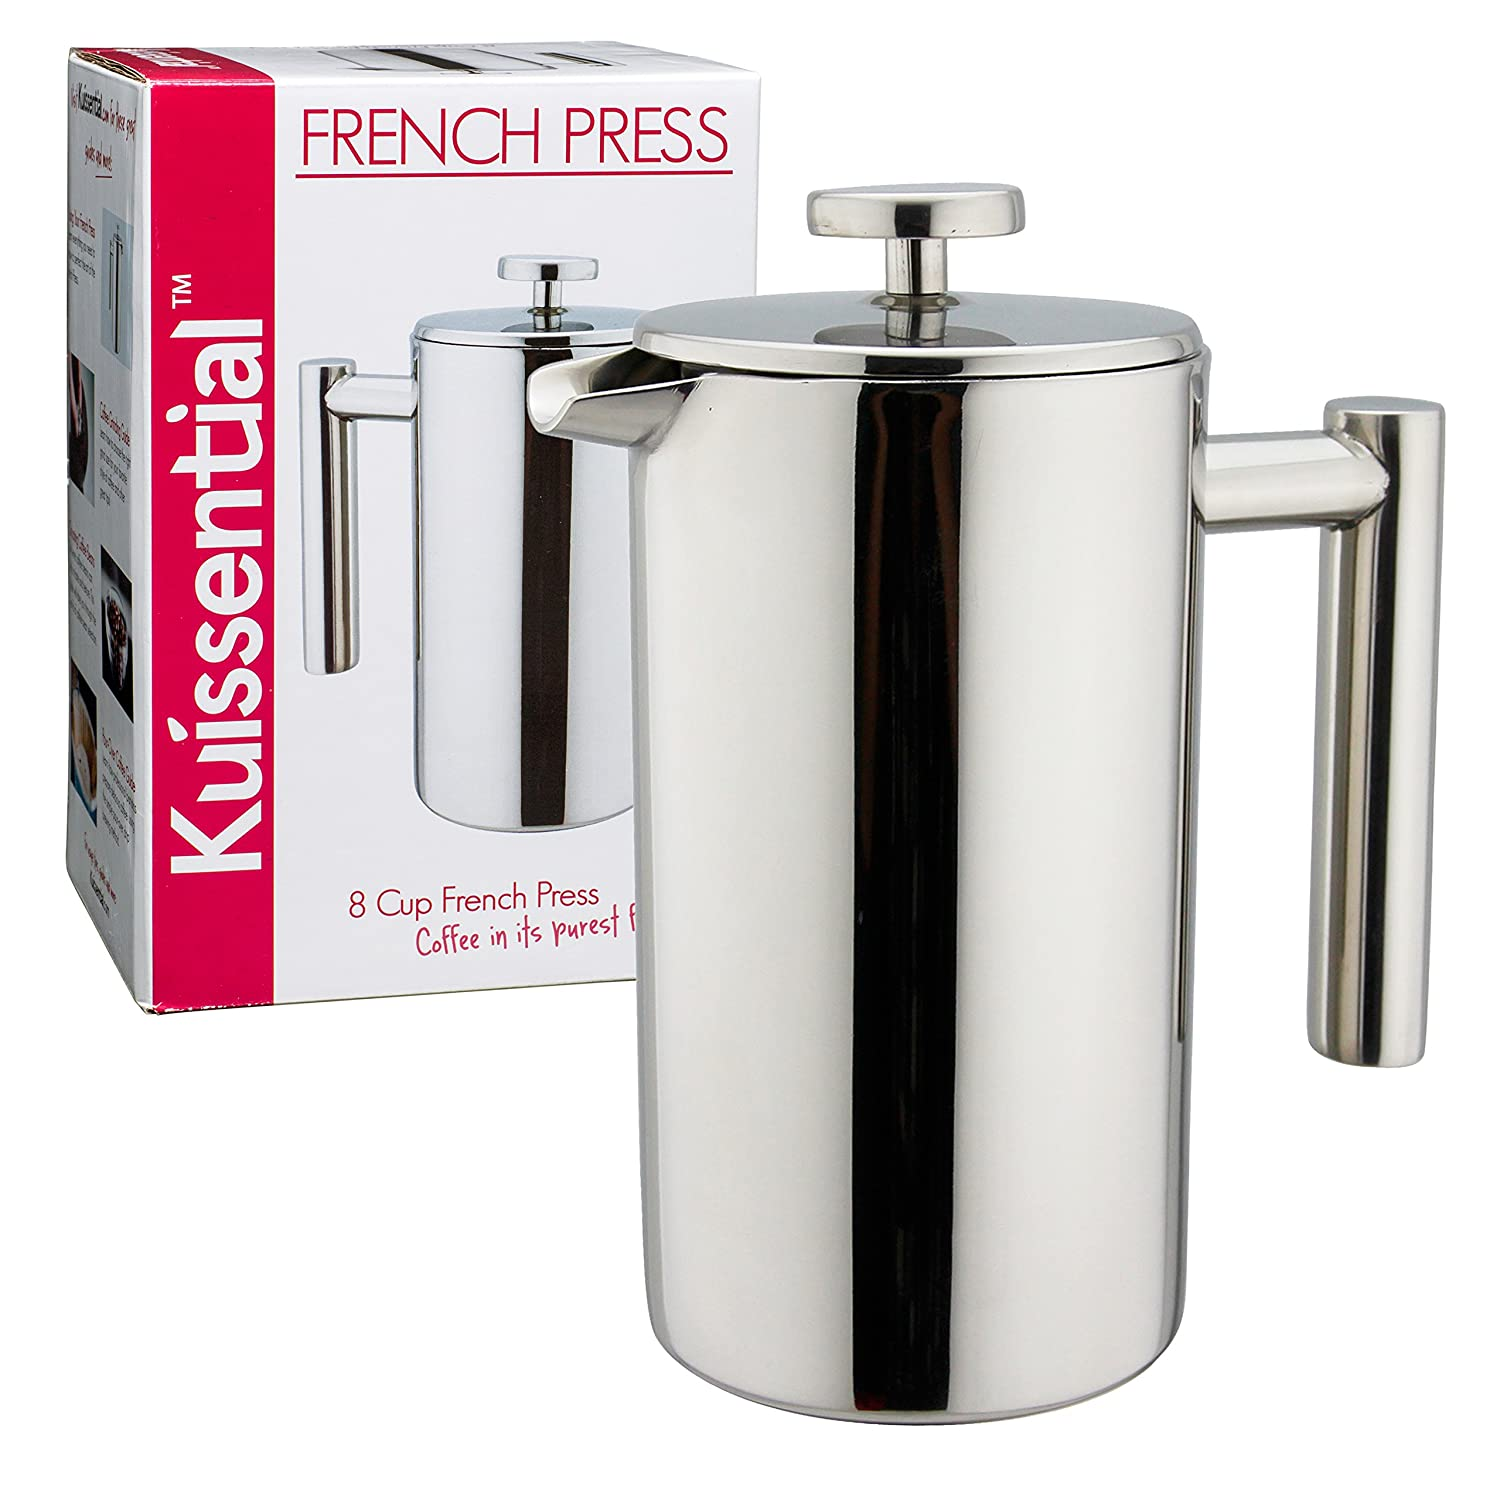 Bed bath beyond french press - Amazon Com Stainless Steel French Press Coffee Maker 34oz Double Wall Insulated Espresso Tea Maker Coffee Servers